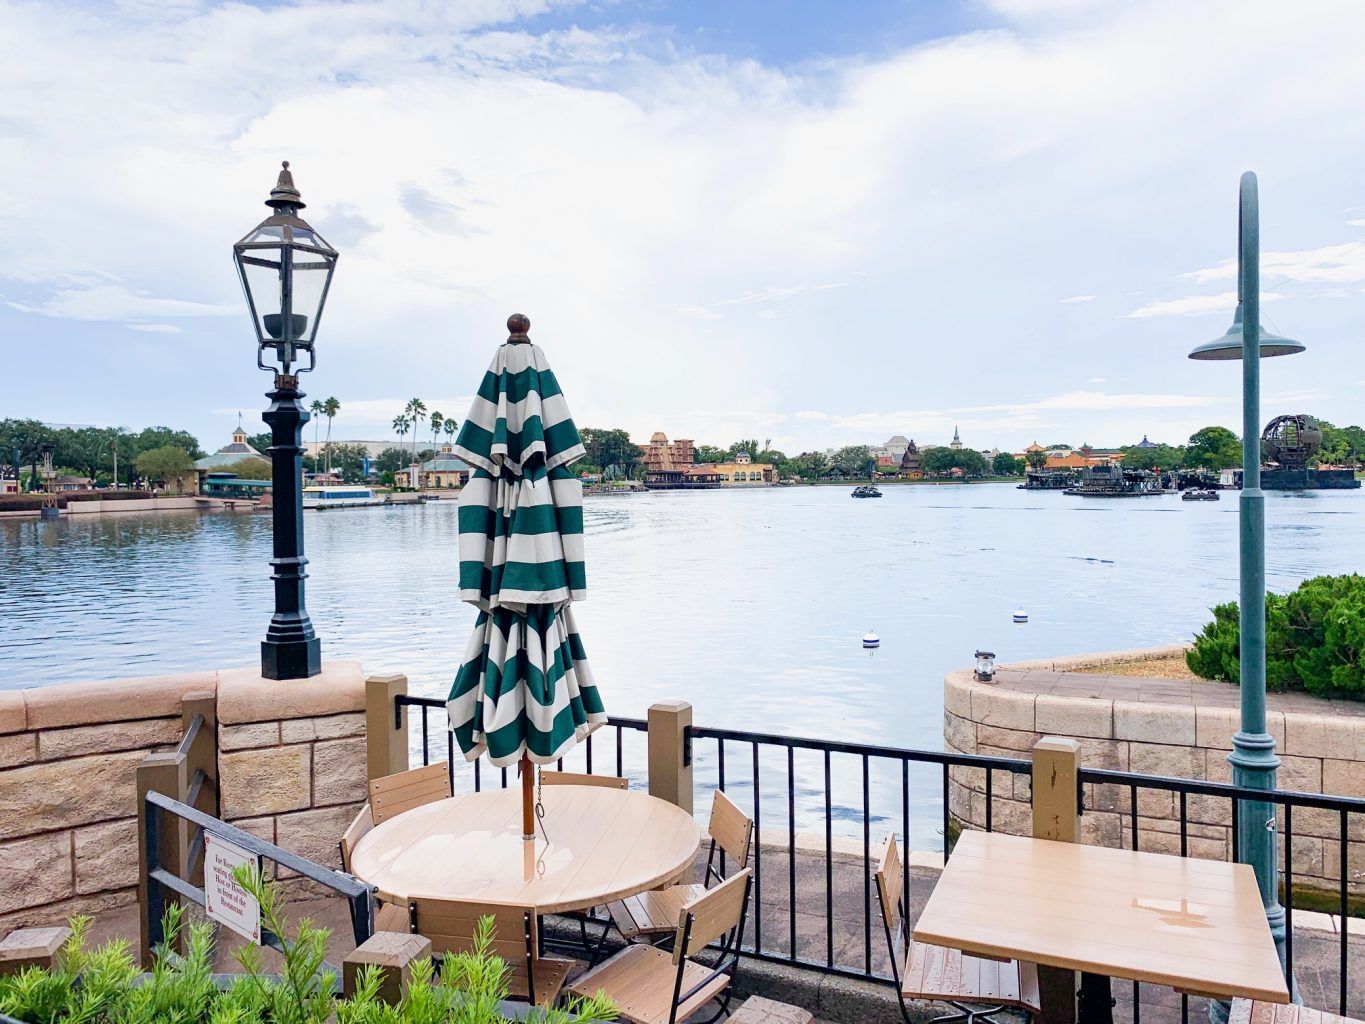 outside of Rose & Crown which you can visit on your Disney dining plan